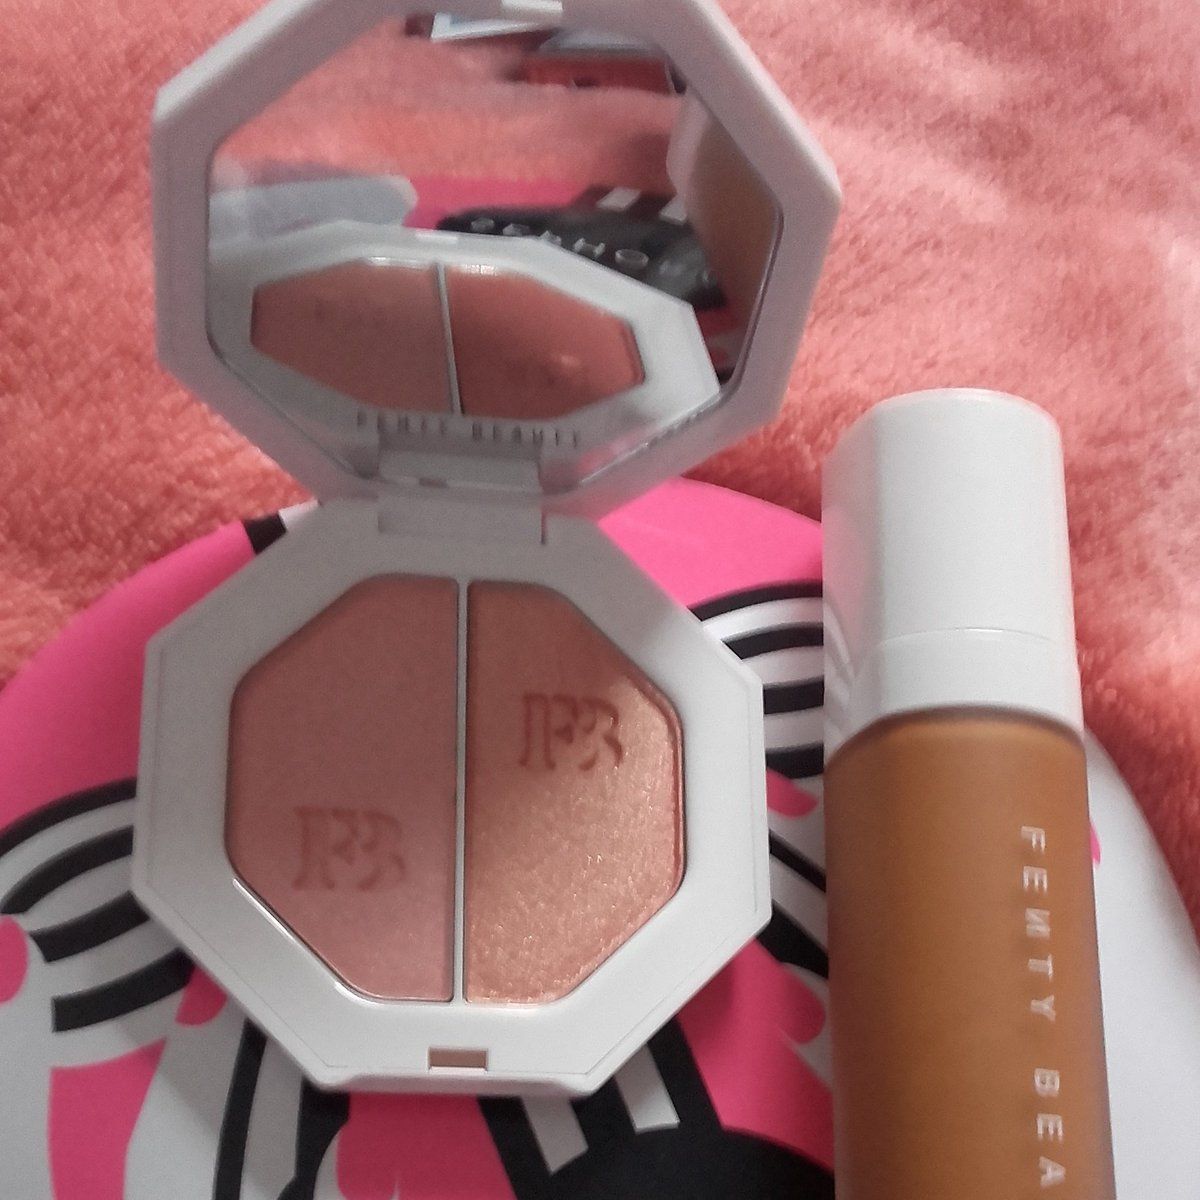 Got my #FentyBeauty today at #SephoraFrance nd I&#39;m an happy girl  riri done more fr diversity in 1 day than them companies in centuries? <br>http://pic.twitter.com/J08m1j3dei